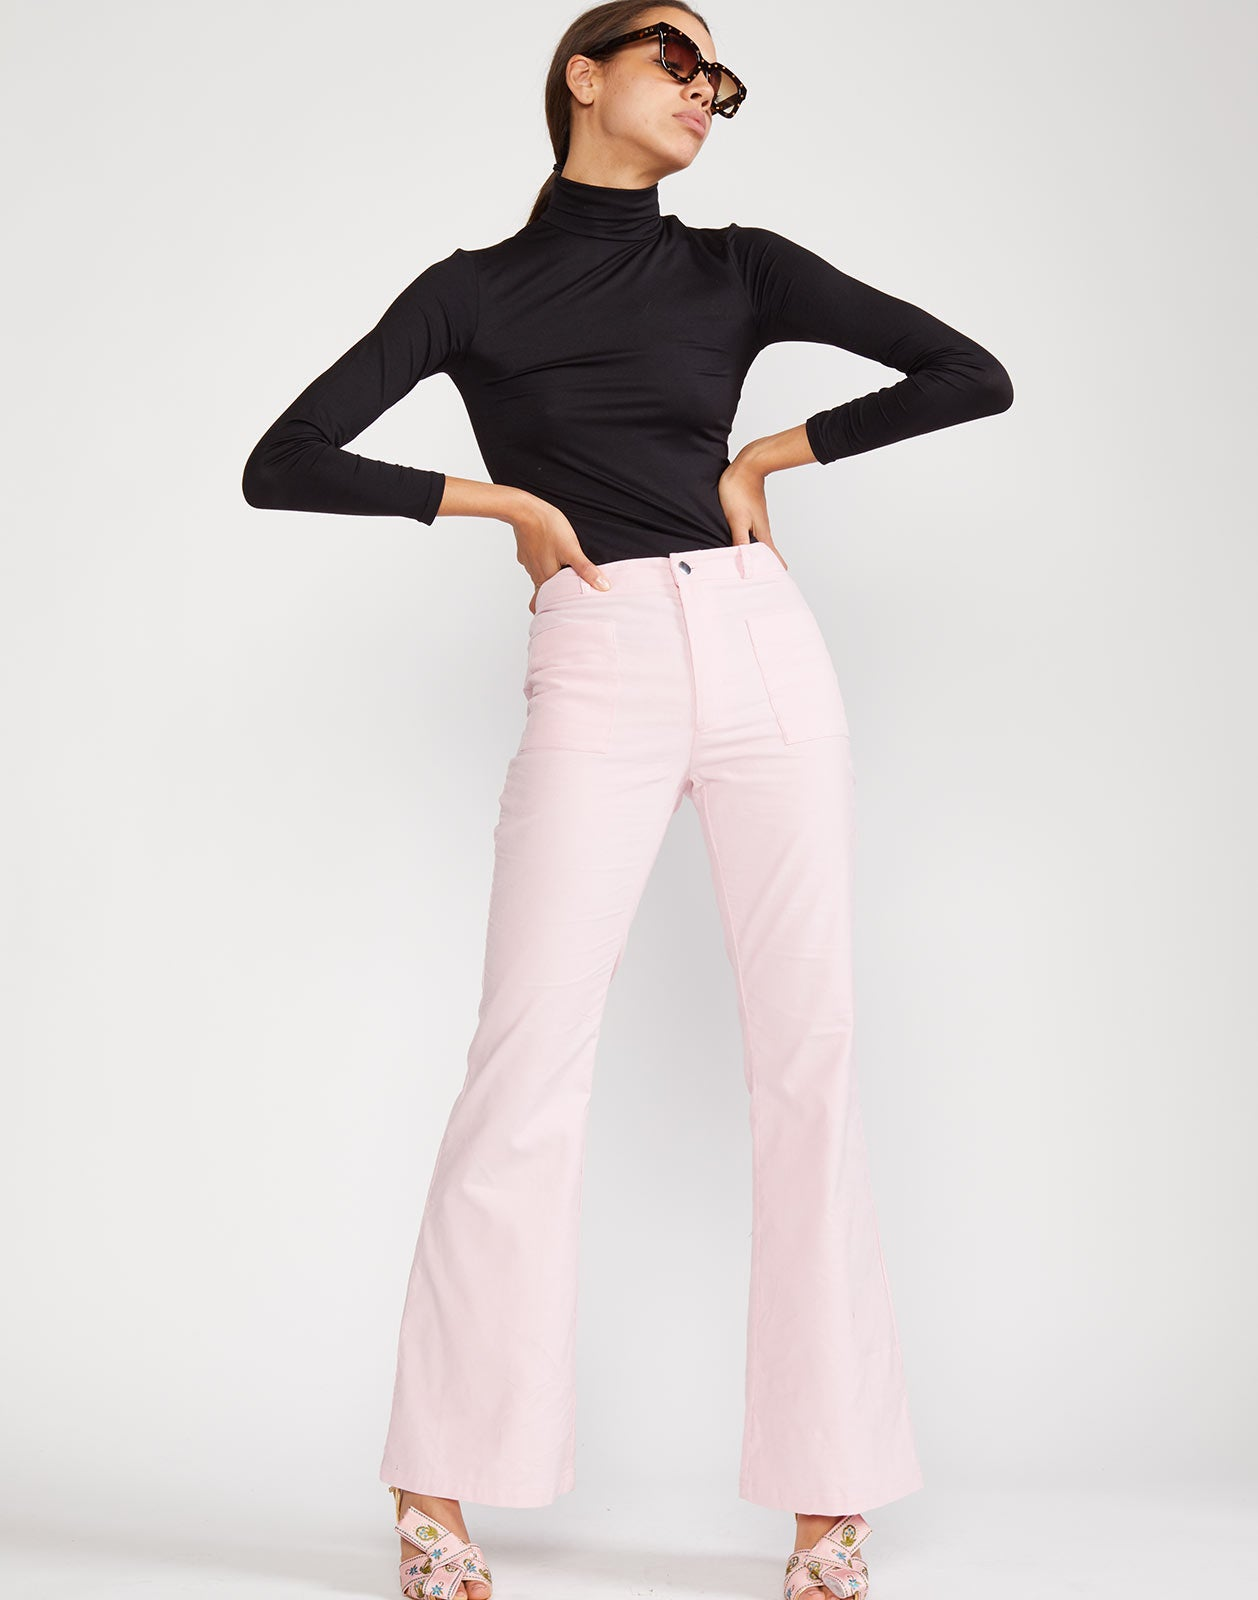 Alternate view of Blake cotton pant with flare silhouette